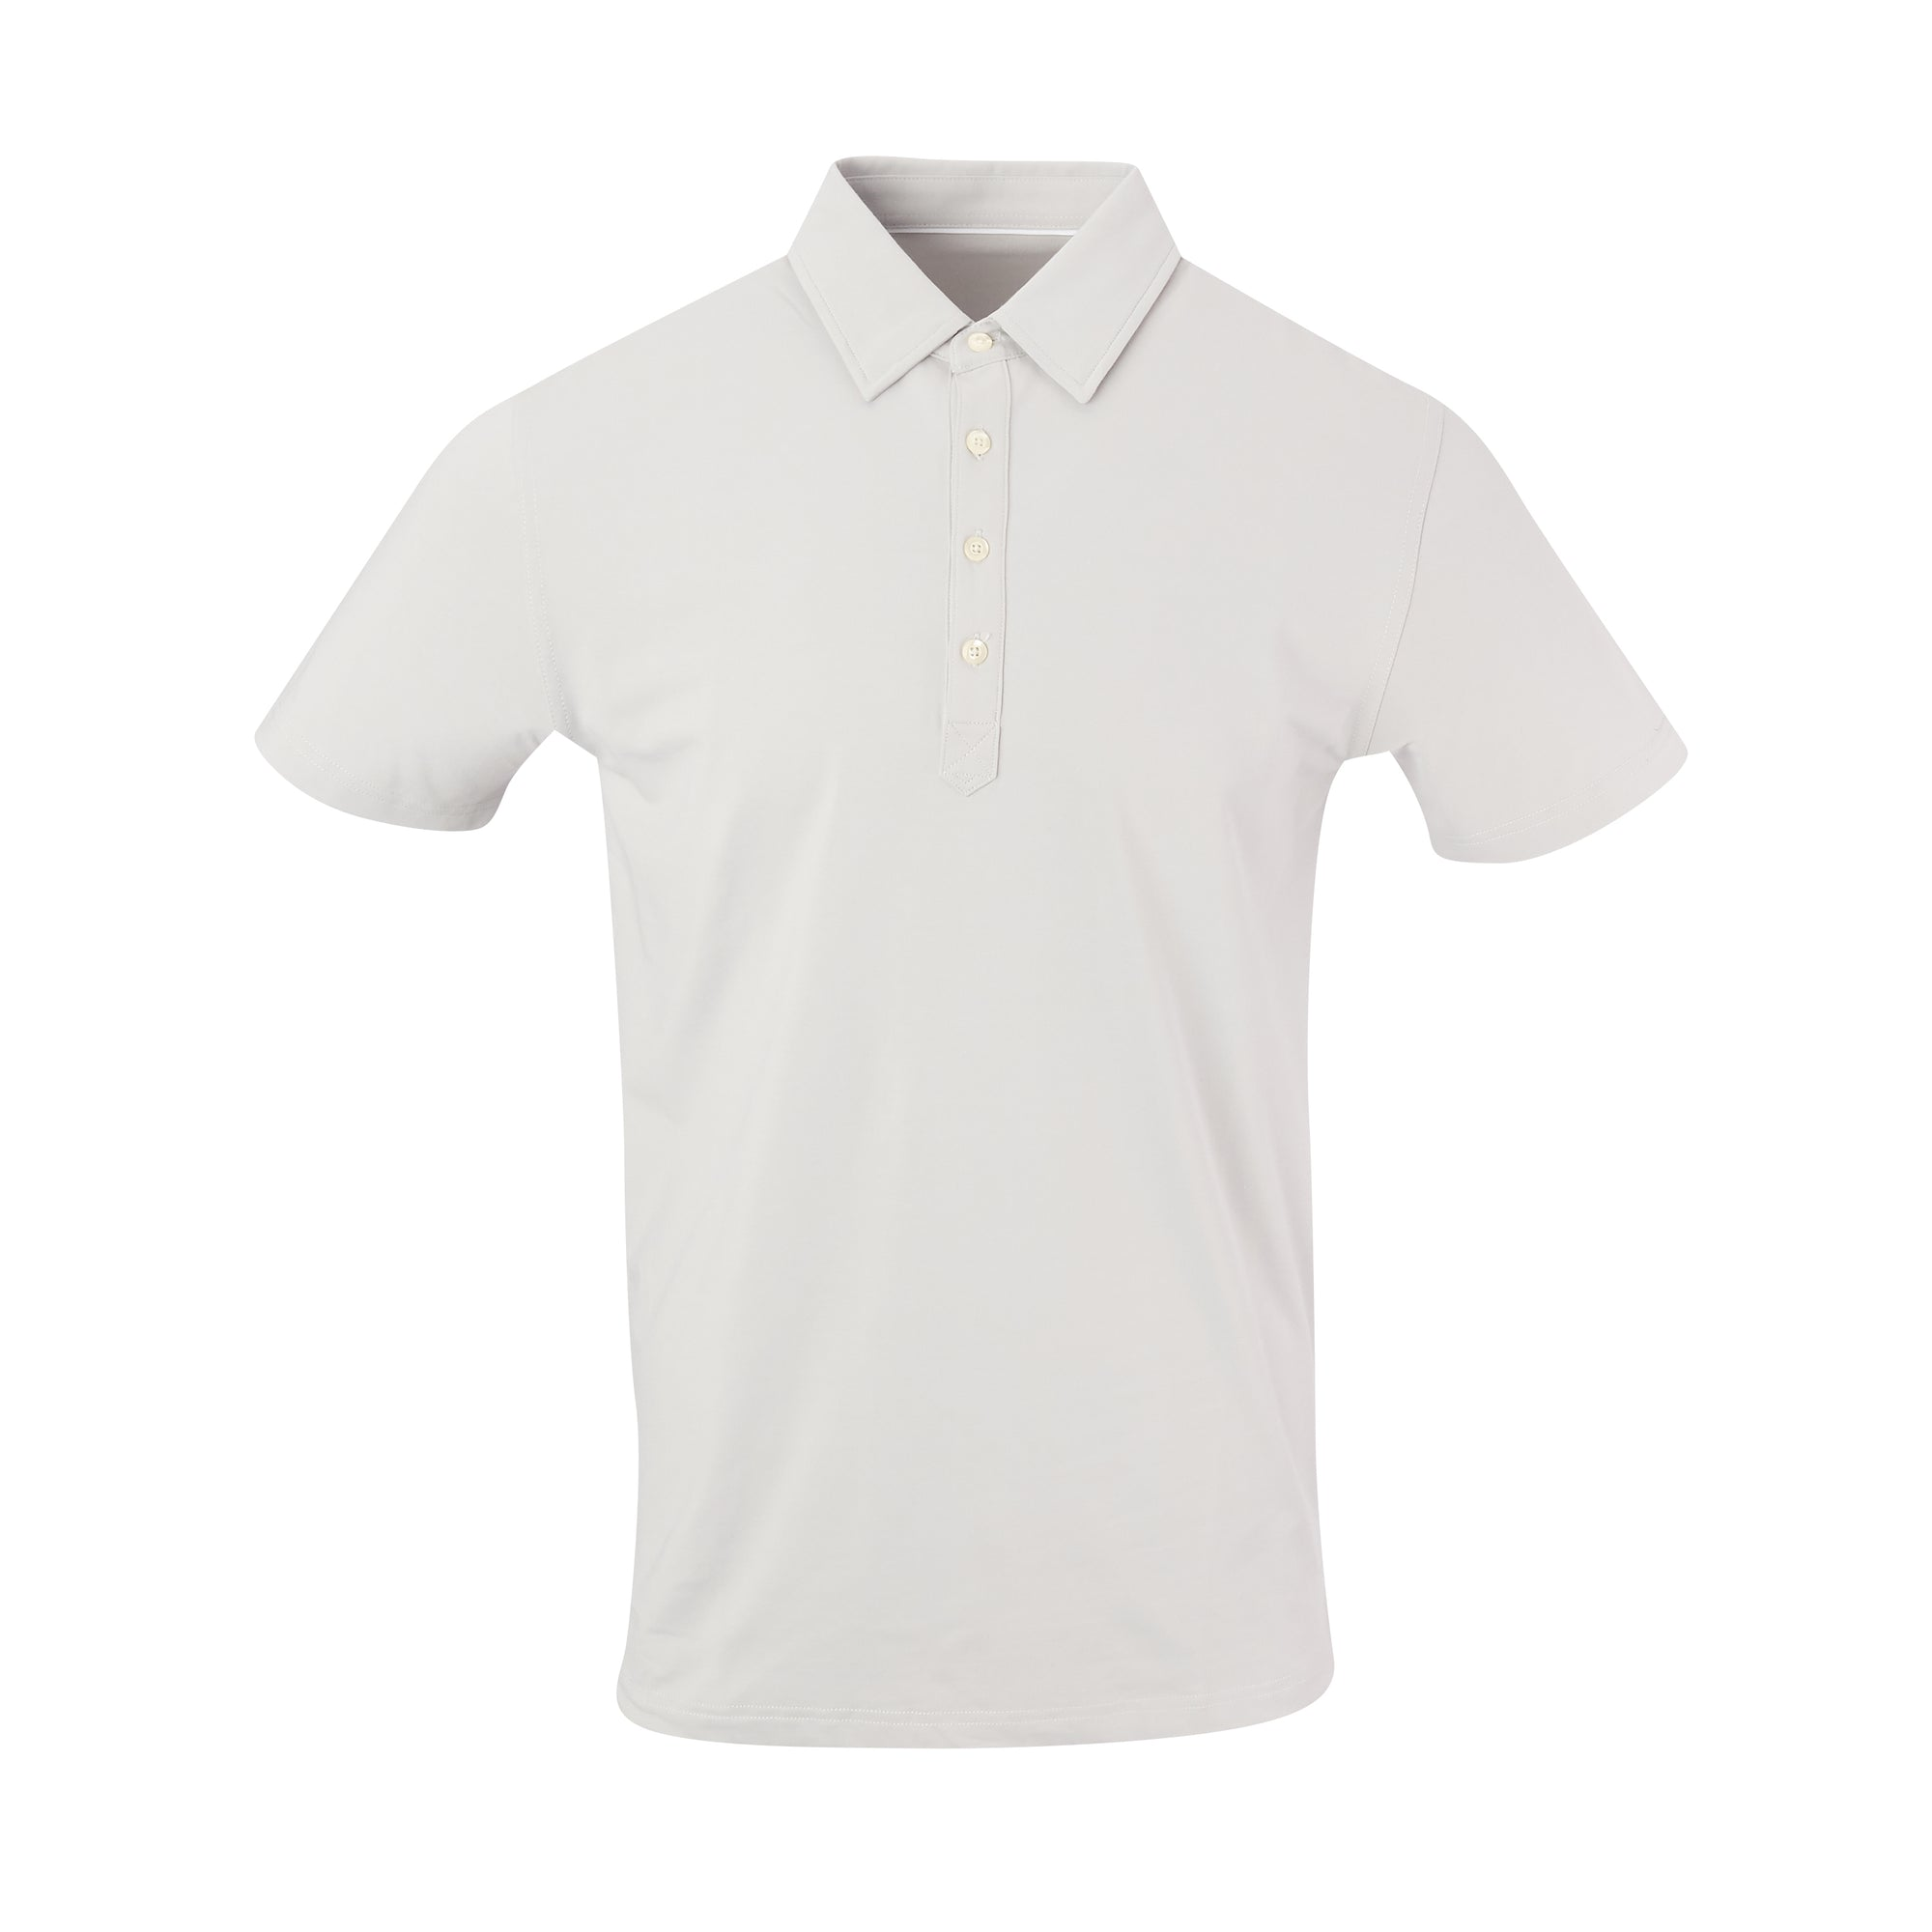 THE ARNIE LUXTEC POLO - Cloud IS72400